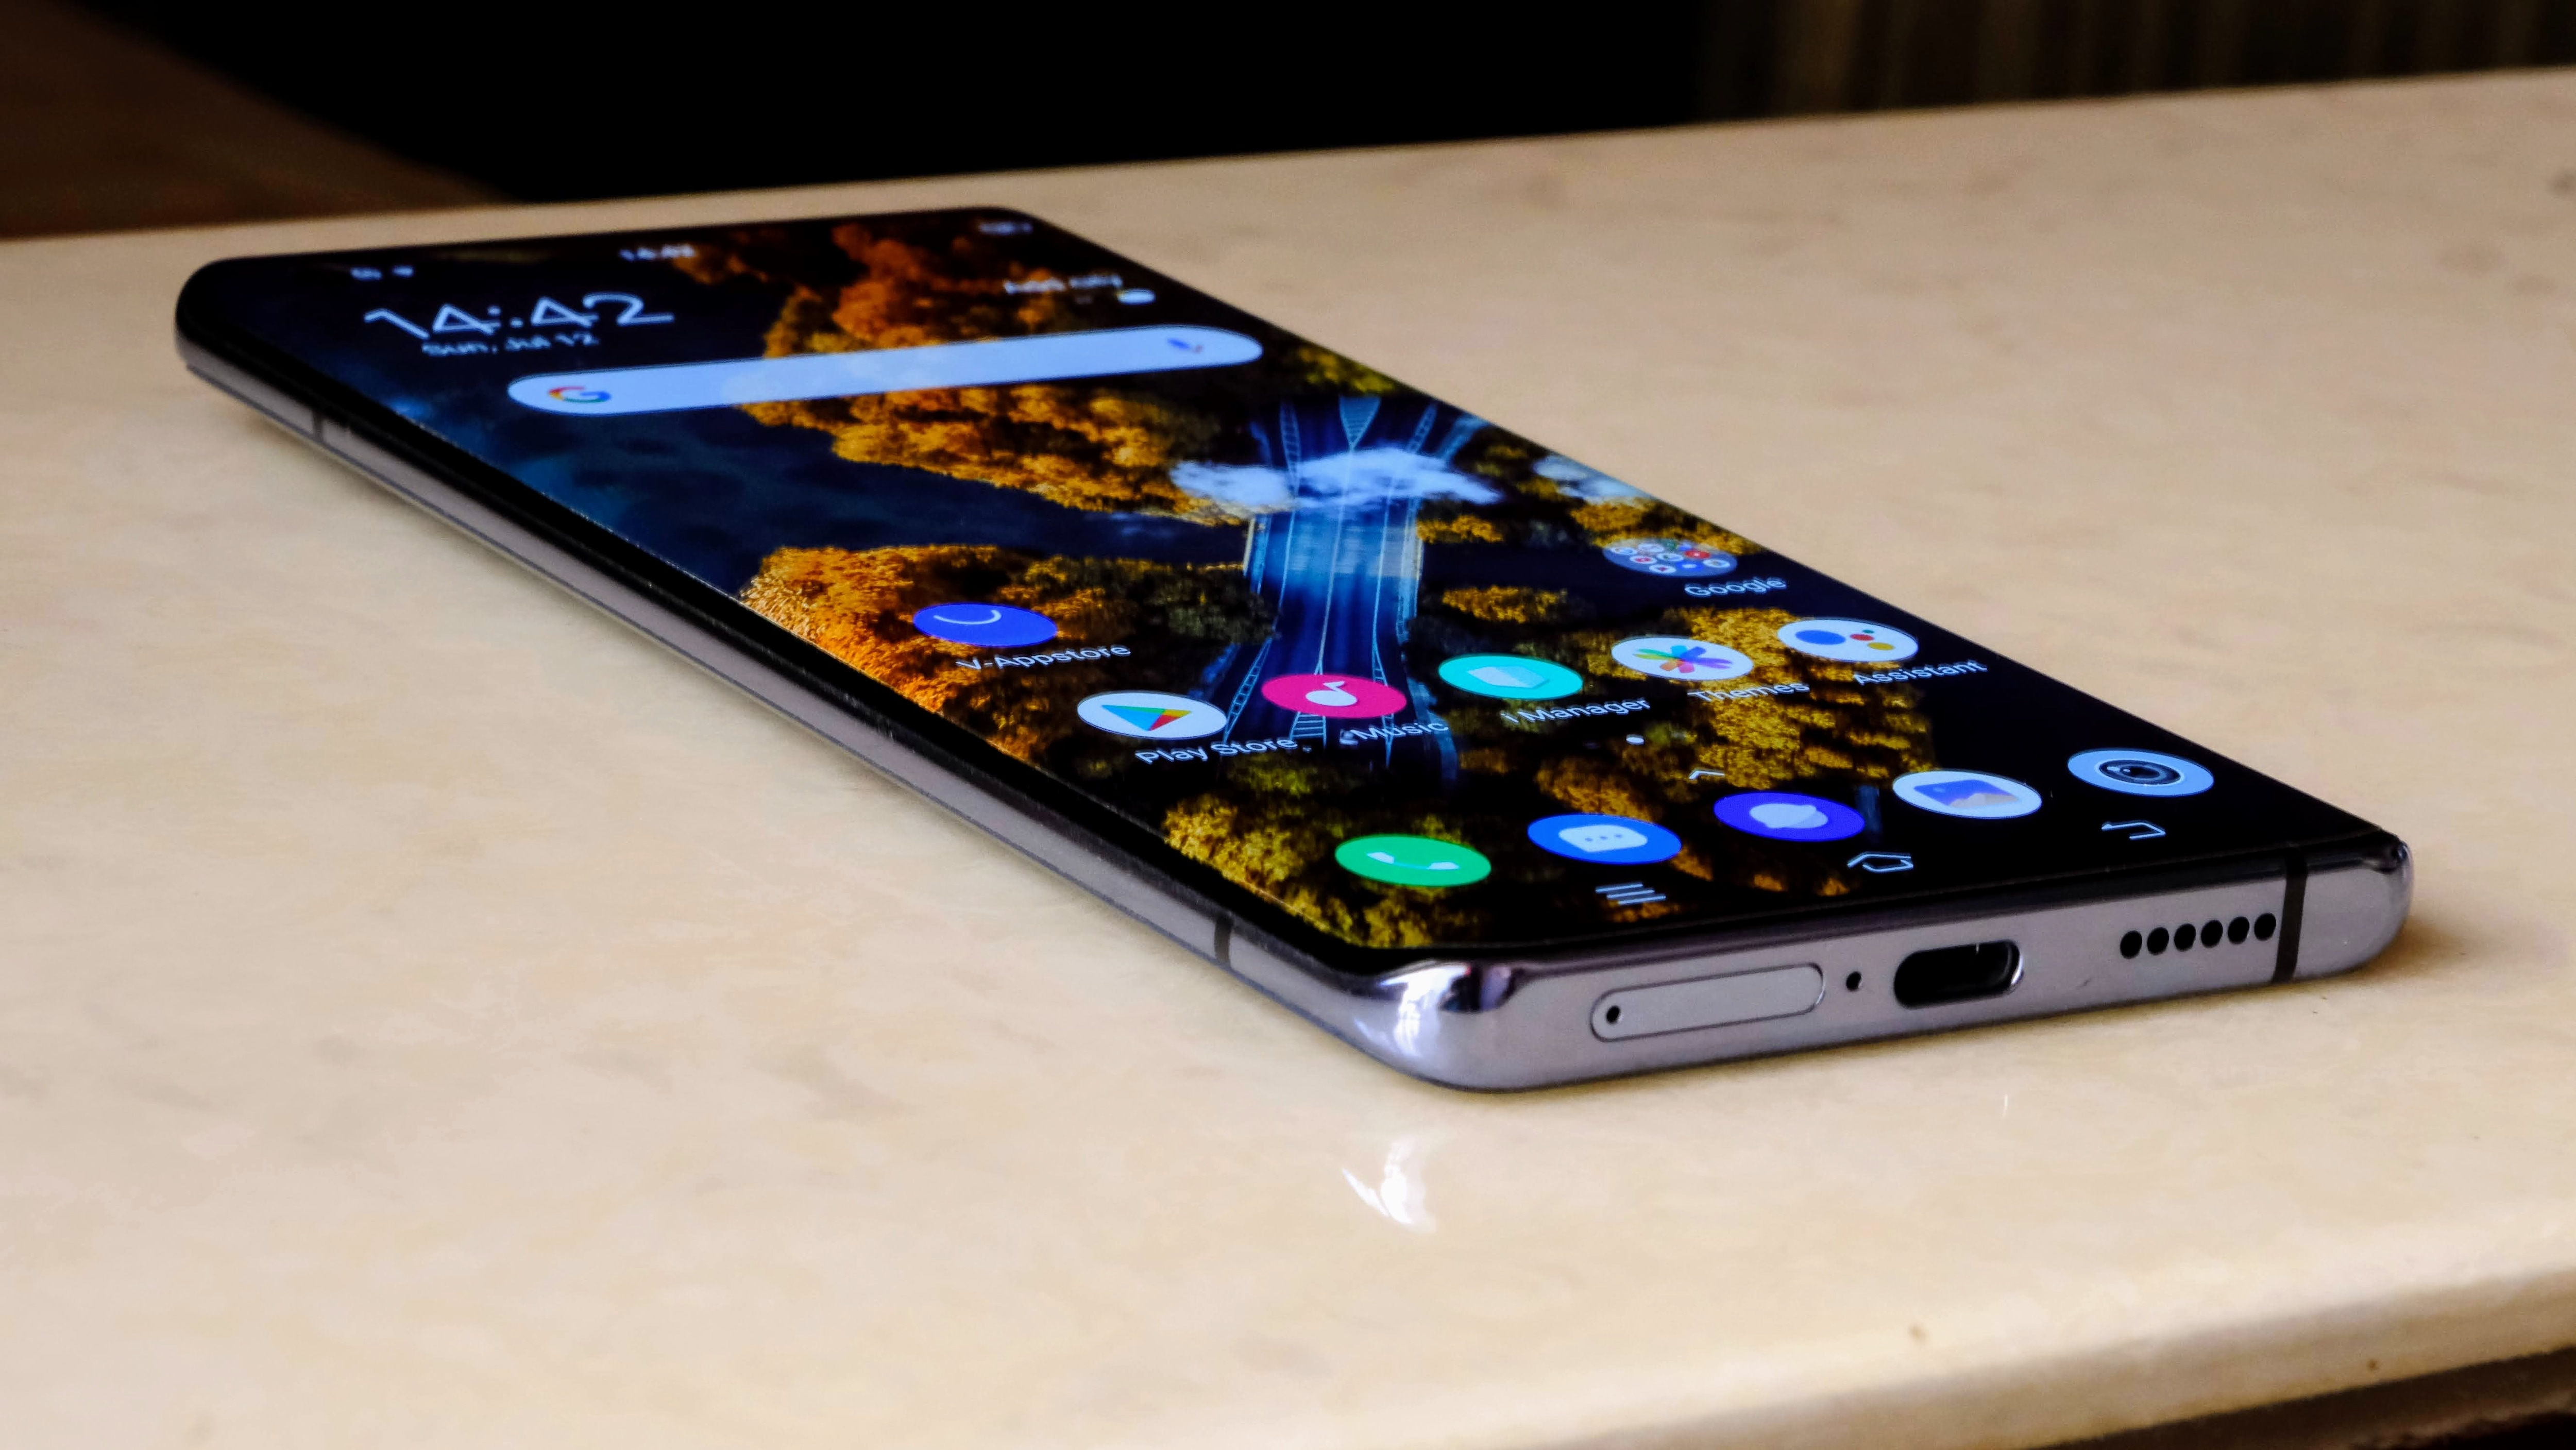 The smartphone has a 6.5-inch FHD+ Samsung AMOLED screen with 60Hz and 90Hz refresh rate options.